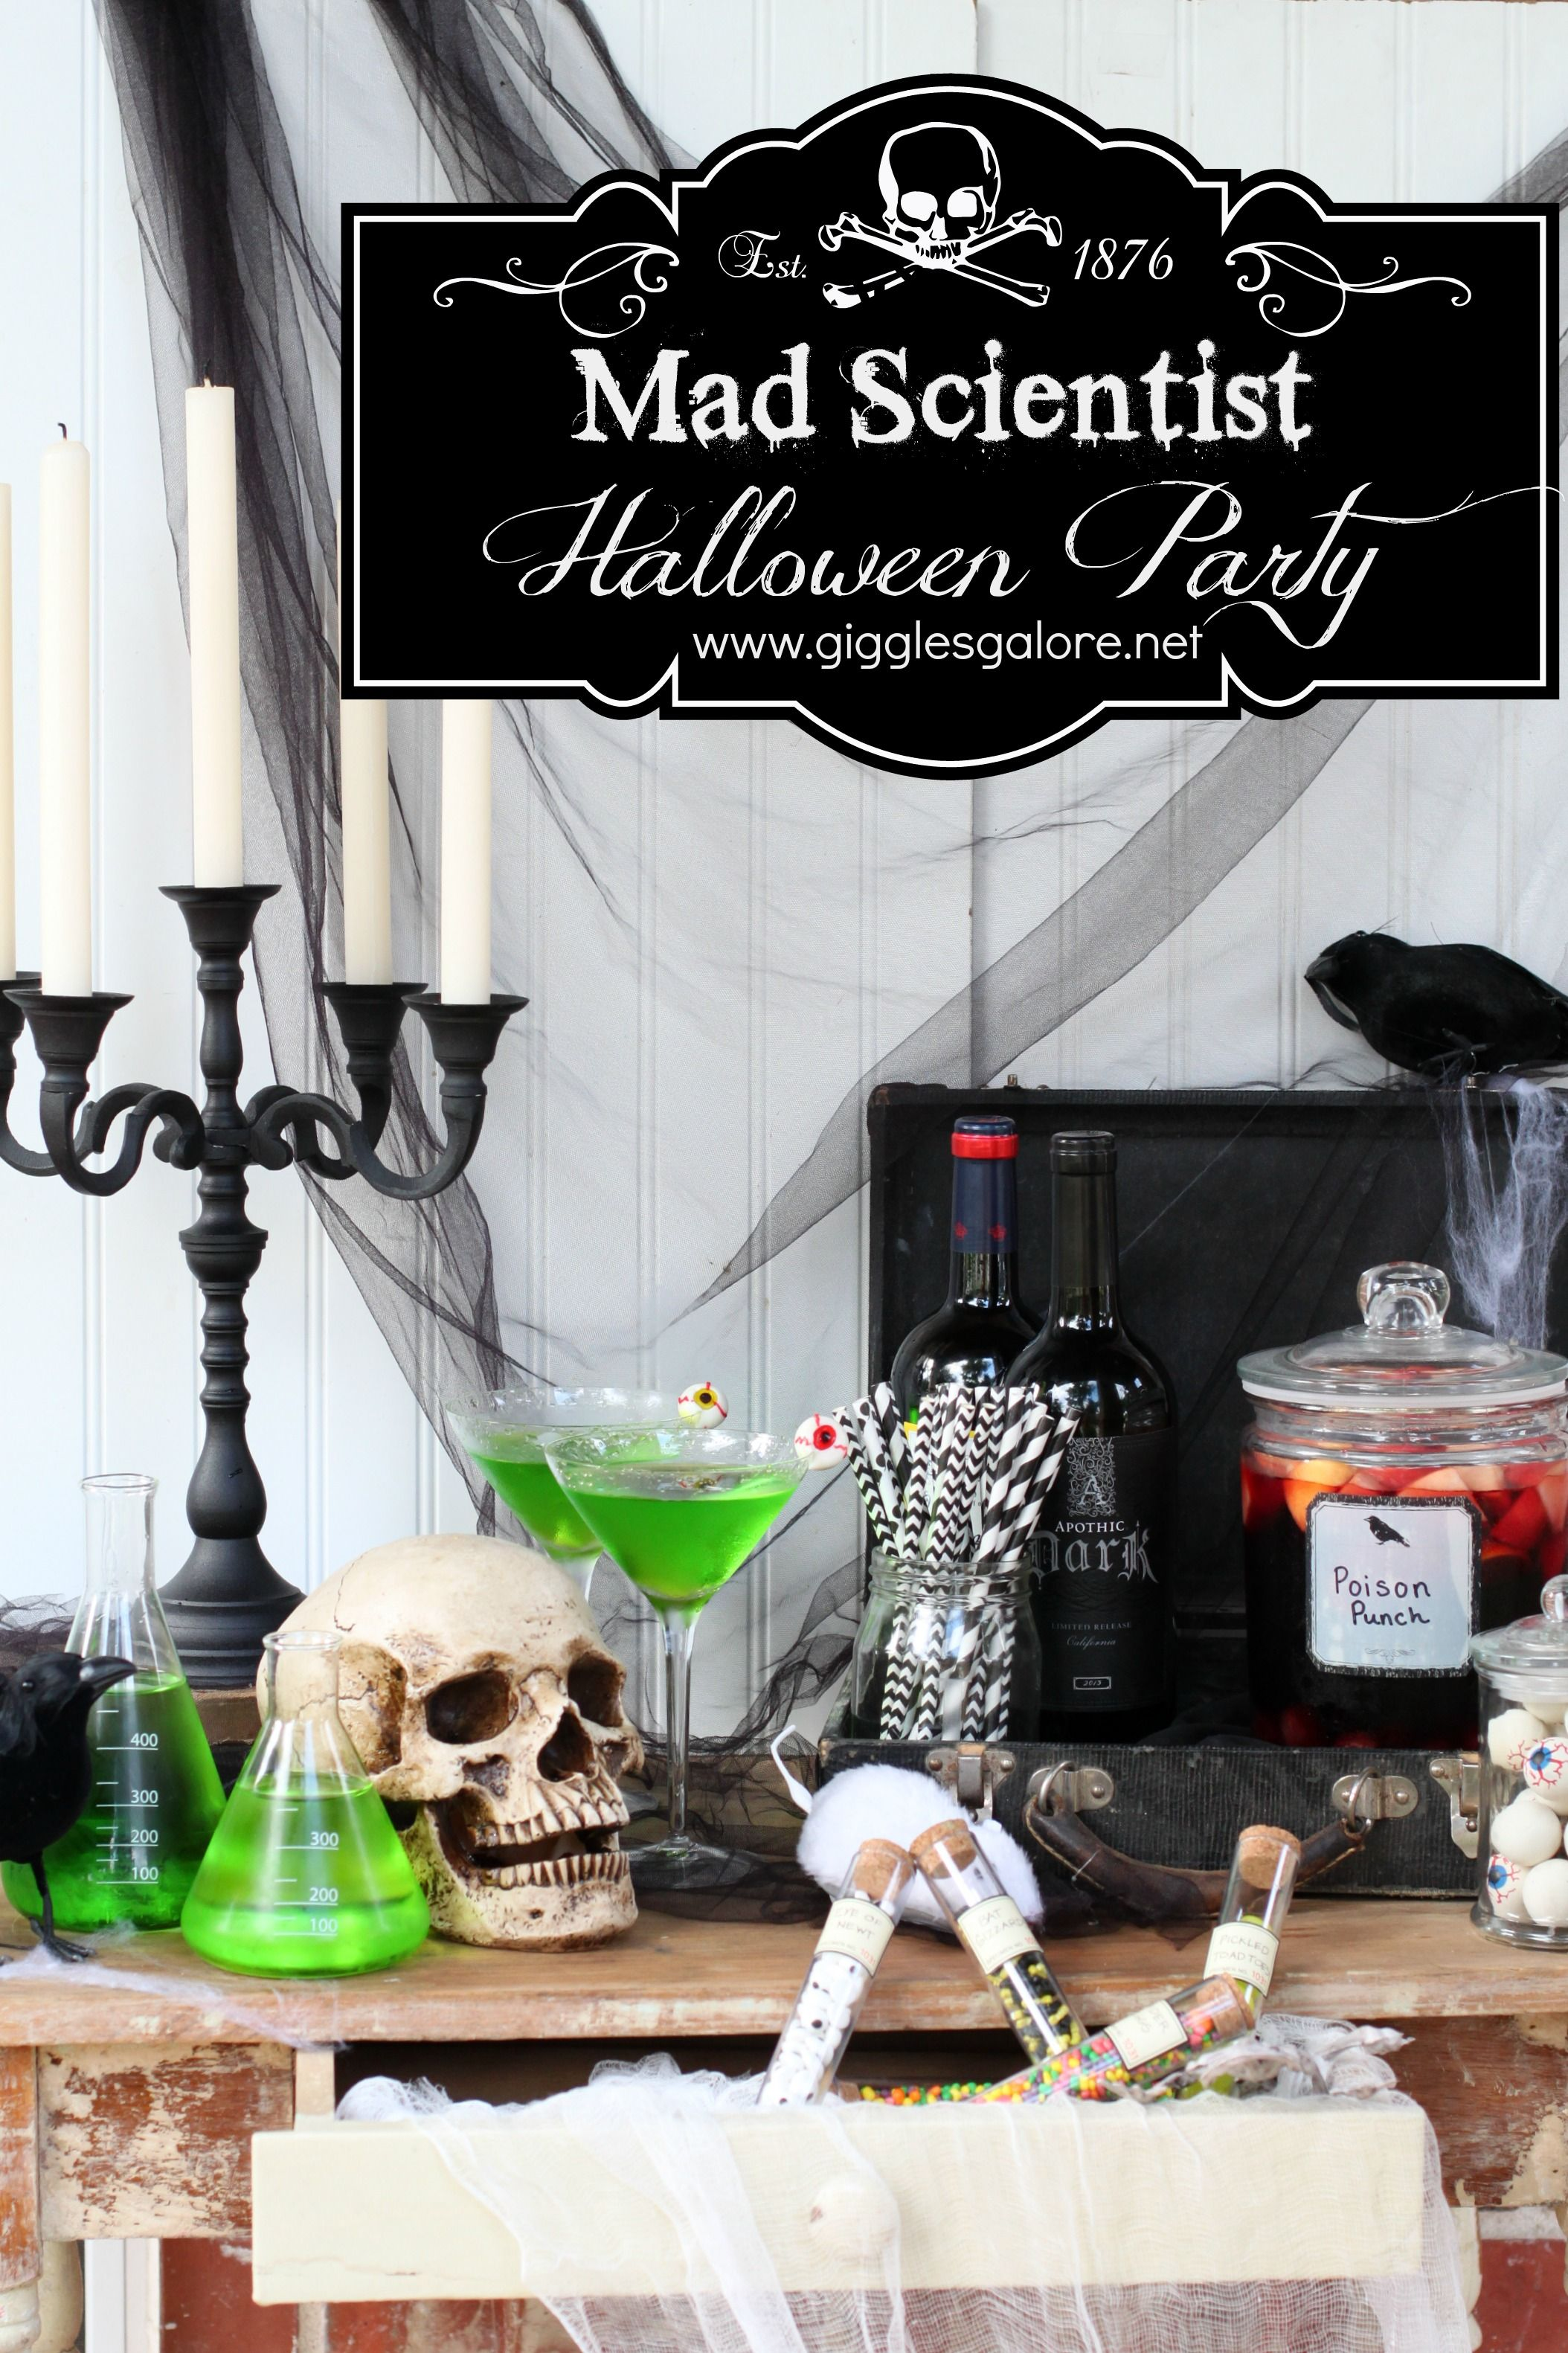 Adult halloween party decor - Mad Scientist Halloween Party Ideas